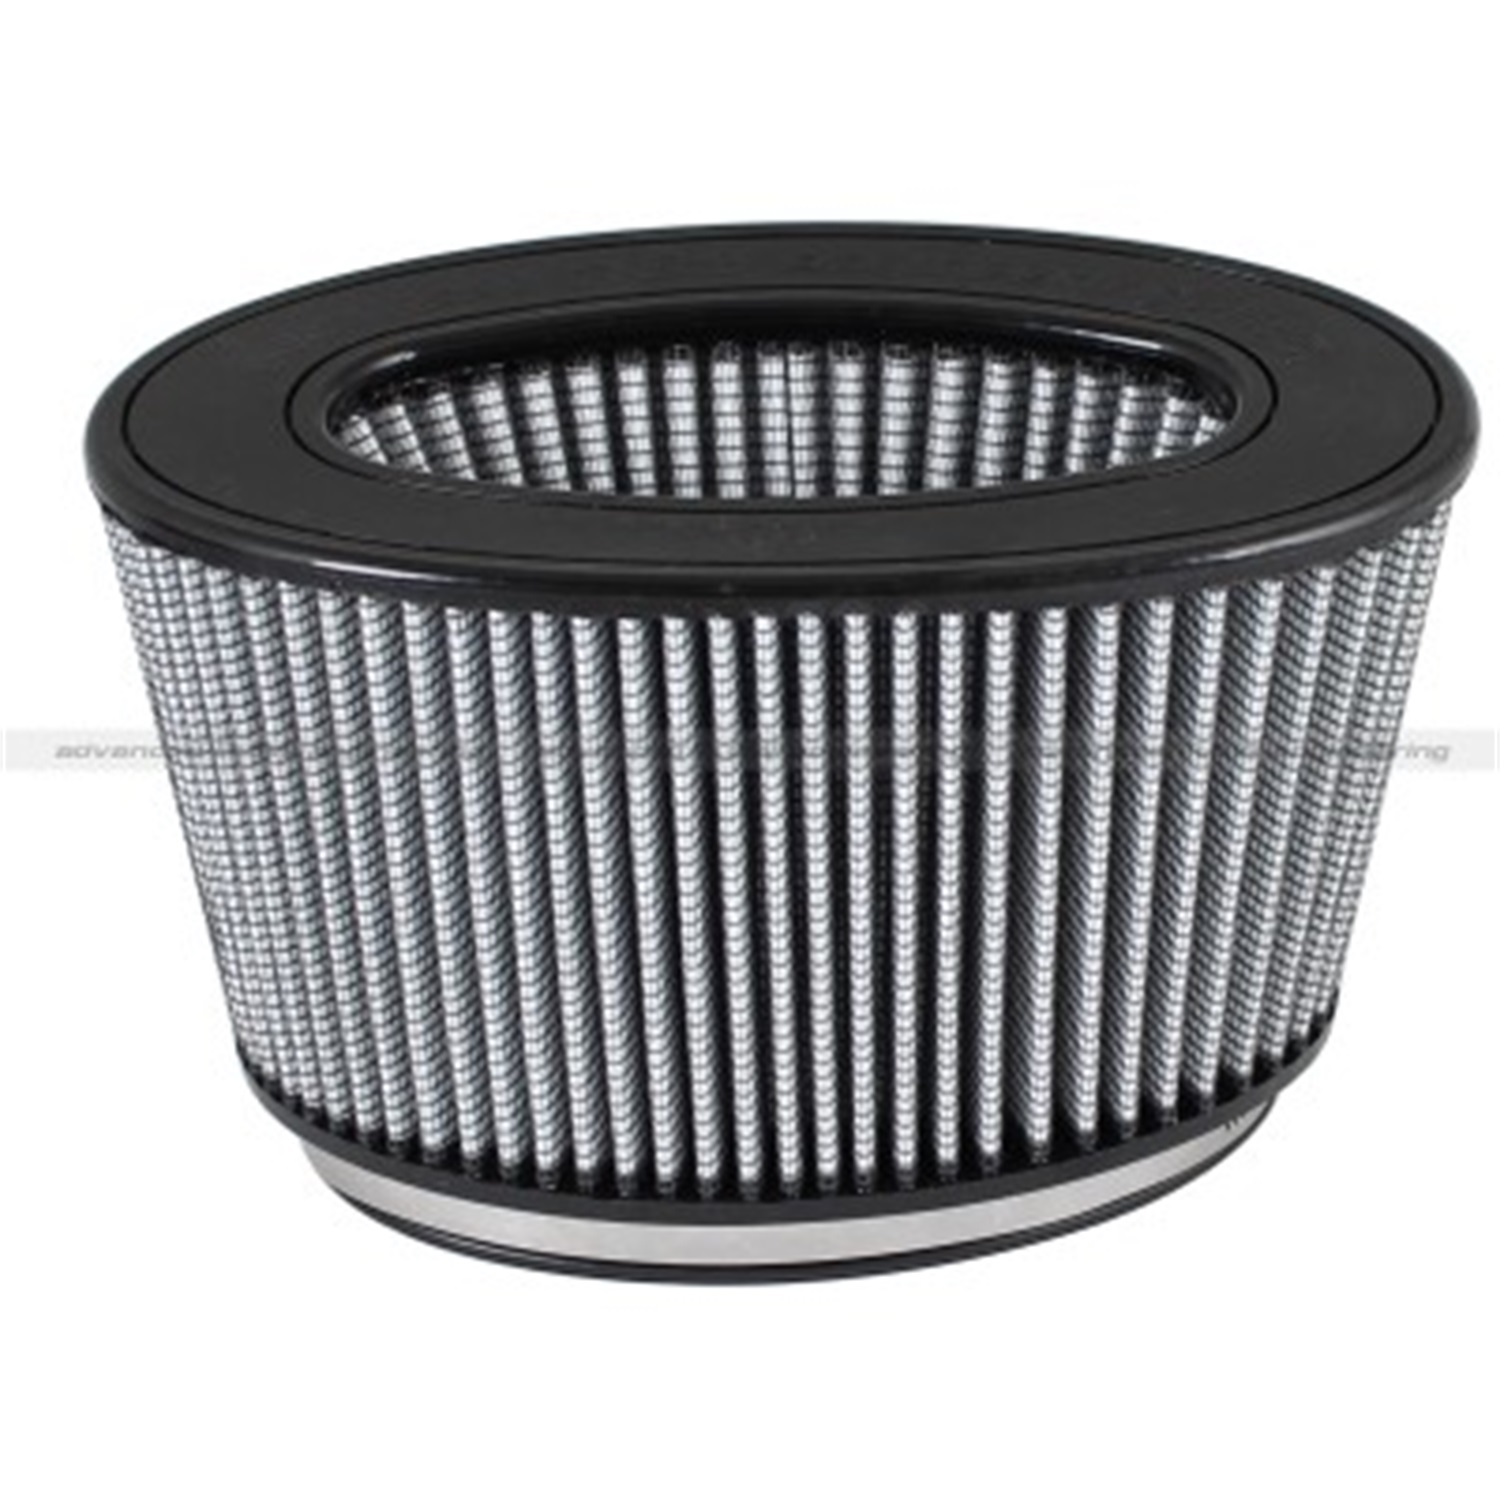 aFe Power 21-91086 MagnumFLOW Universal Clamp On PRO DRY S Air Filter 21-91086